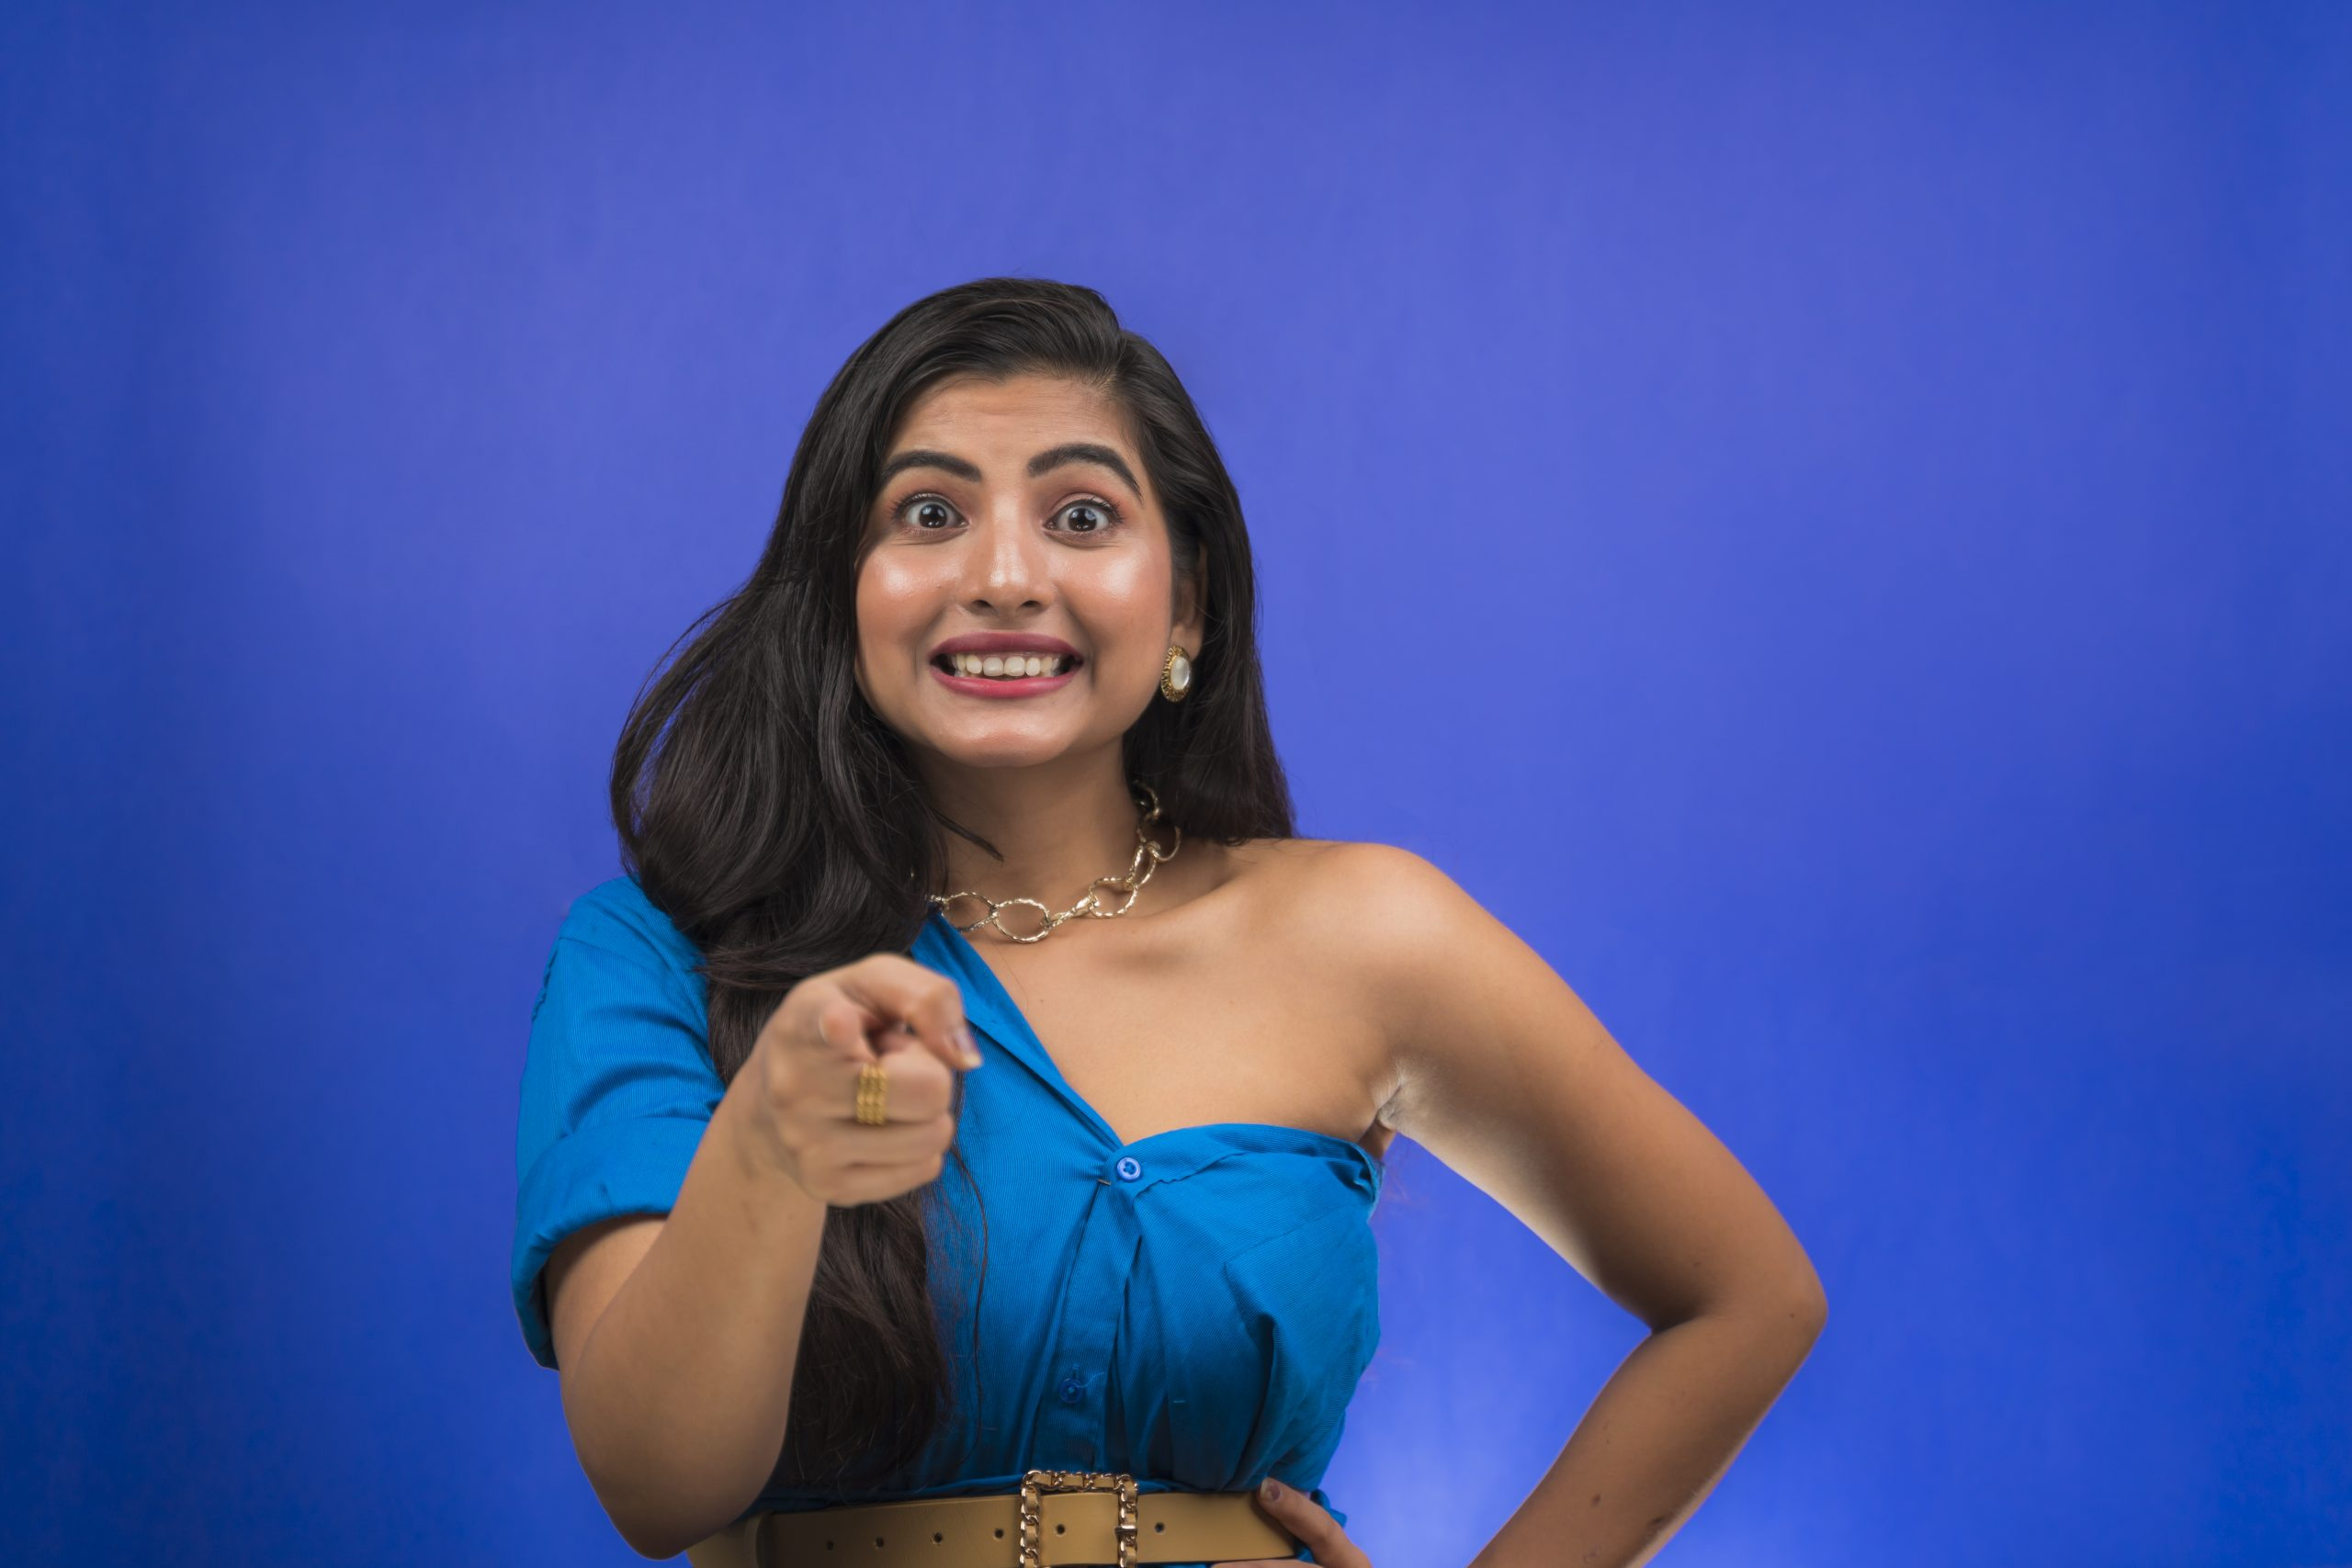 Excited indian girl pointing towards camera